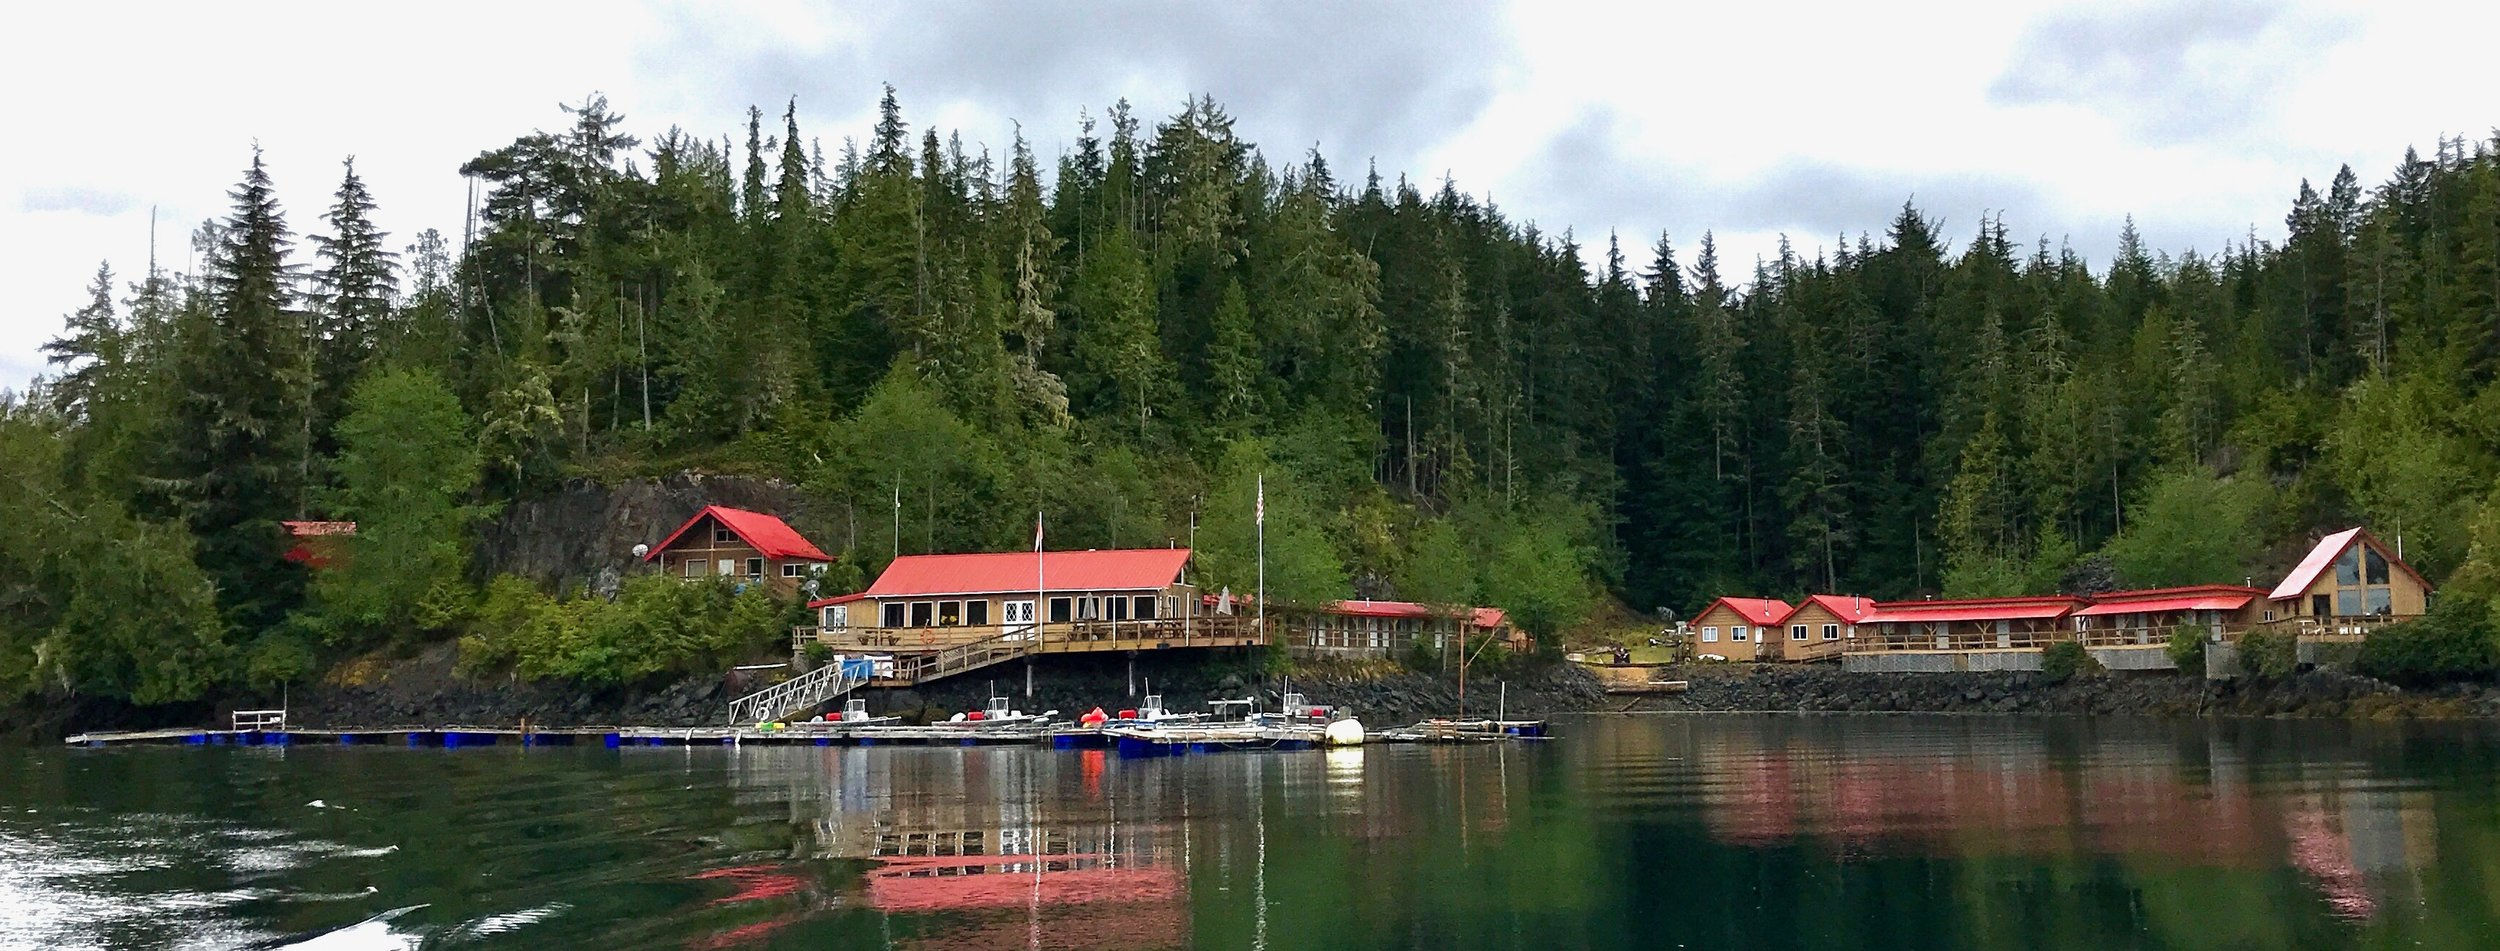 The former fishing lodge, Pacific Outback Resort, from the bay